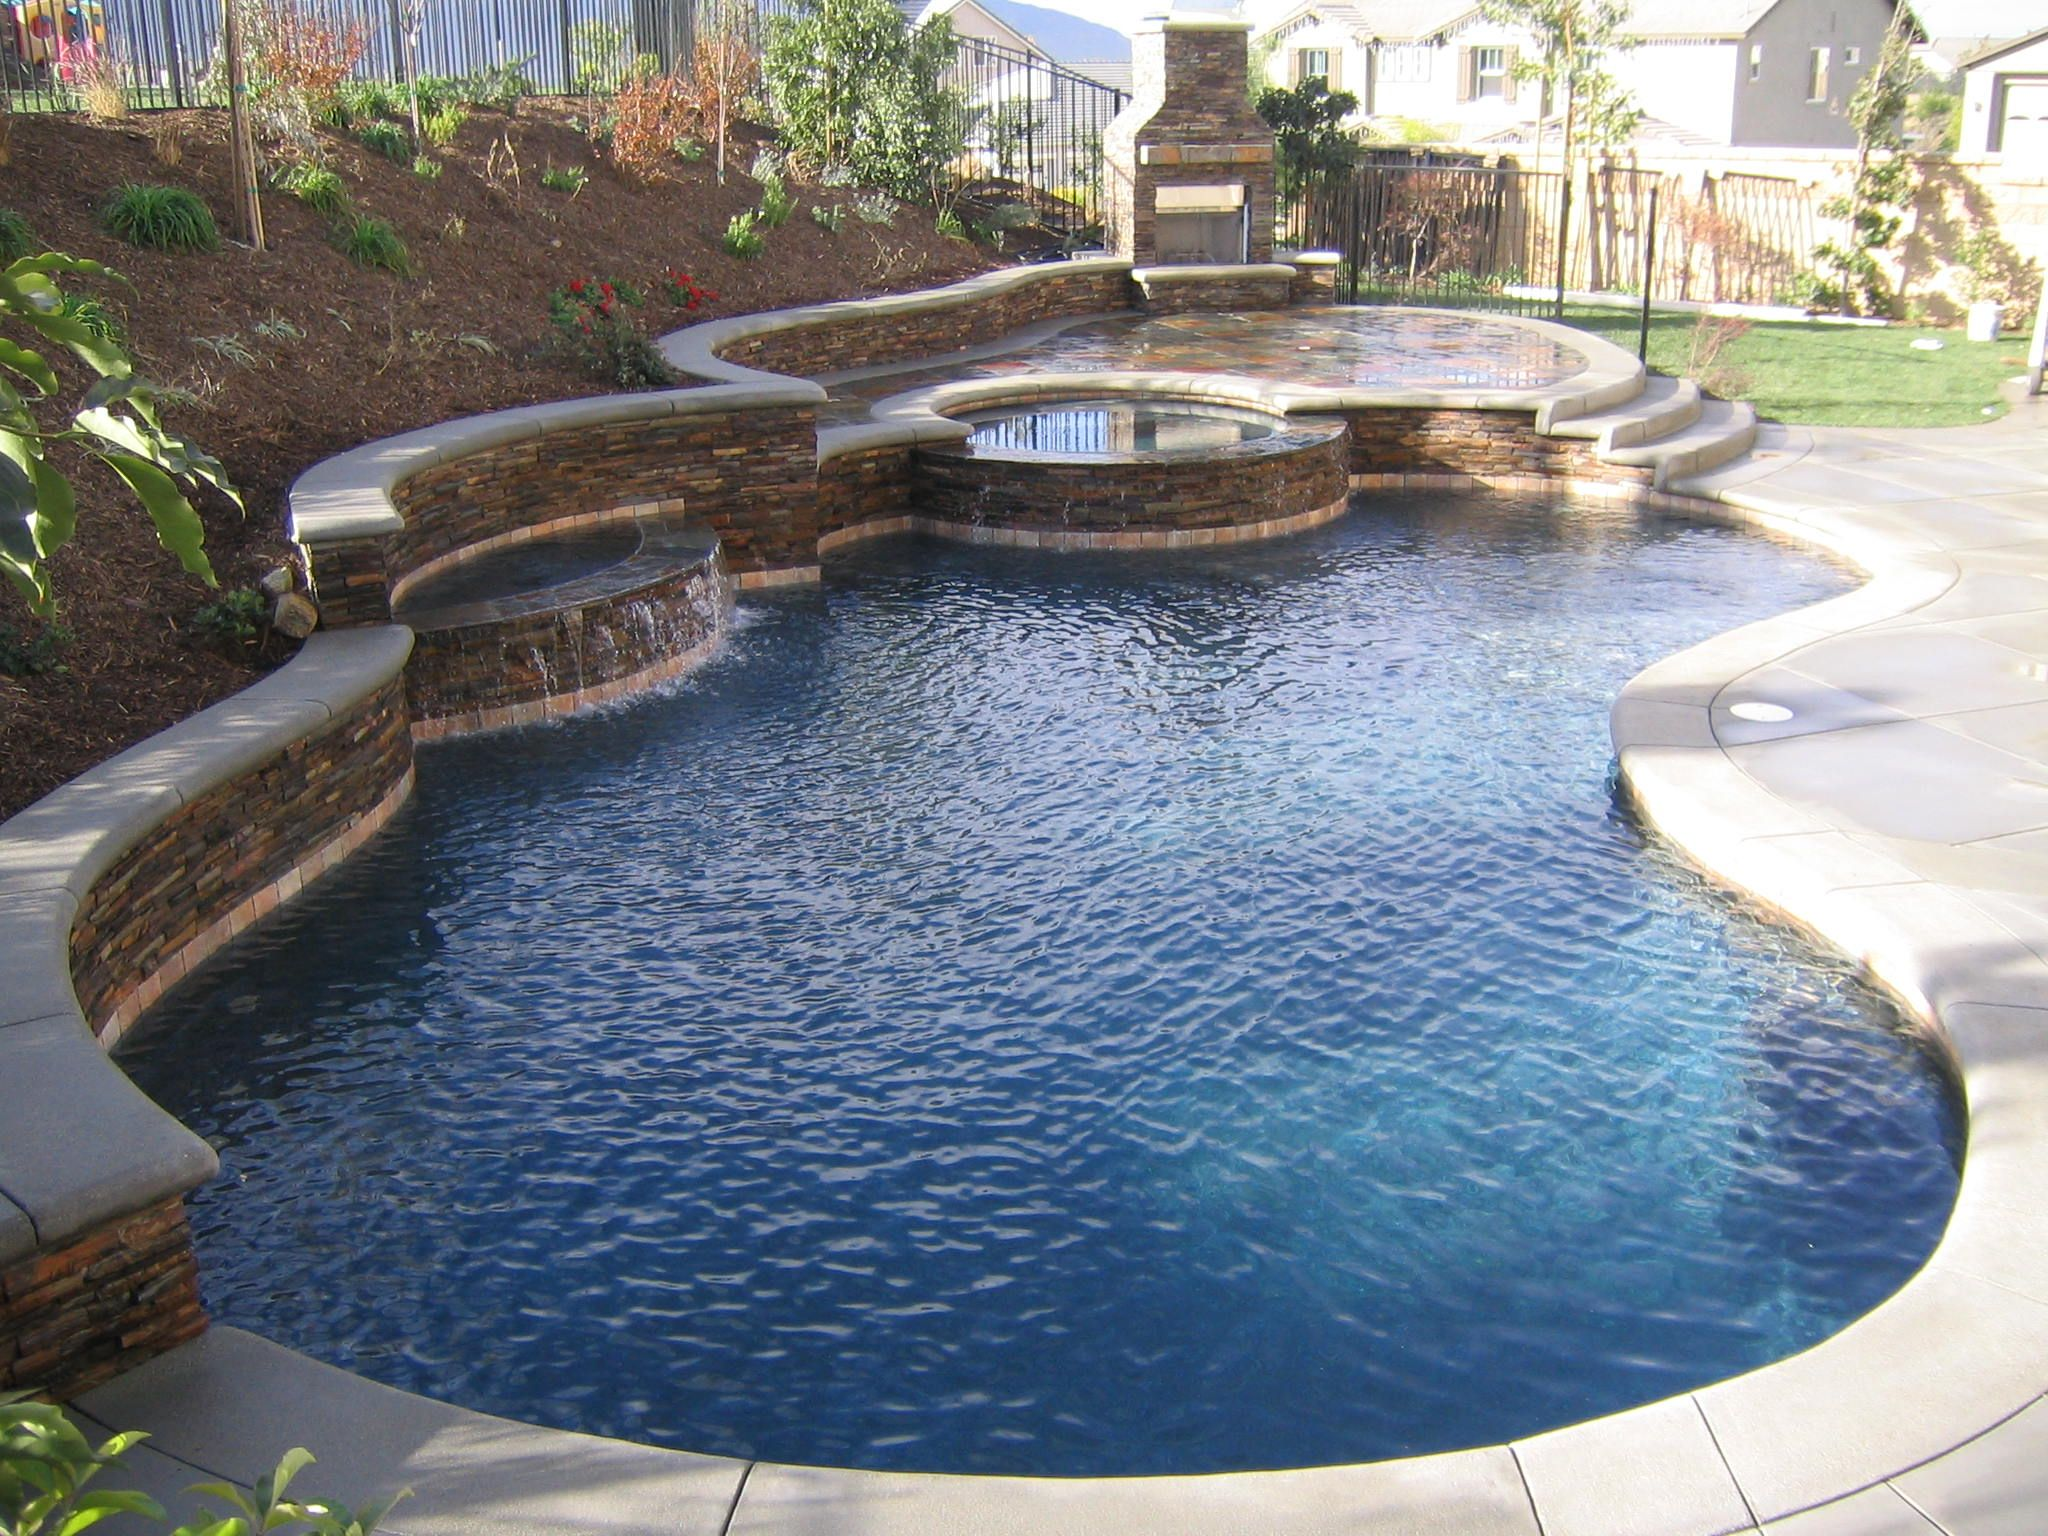 Outdoor Backyard Pools we specialize in full service pool and spa cleaning and repair